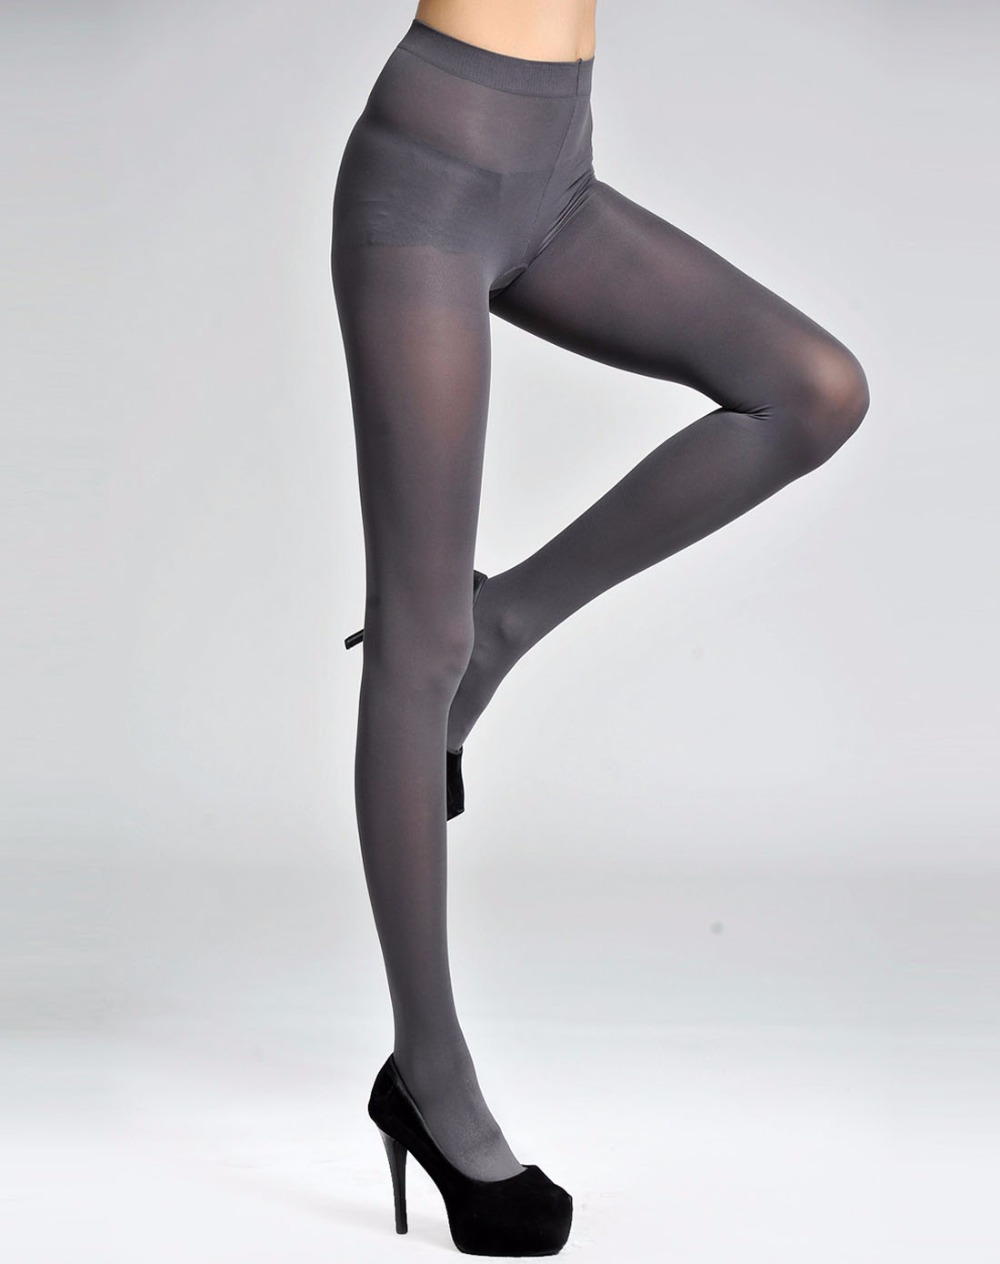 Hot Sale Tights Ultra Elastic New Womens Silk Stockings Pouch Sheath Underwear Stocking For Sexy Stockings Gray